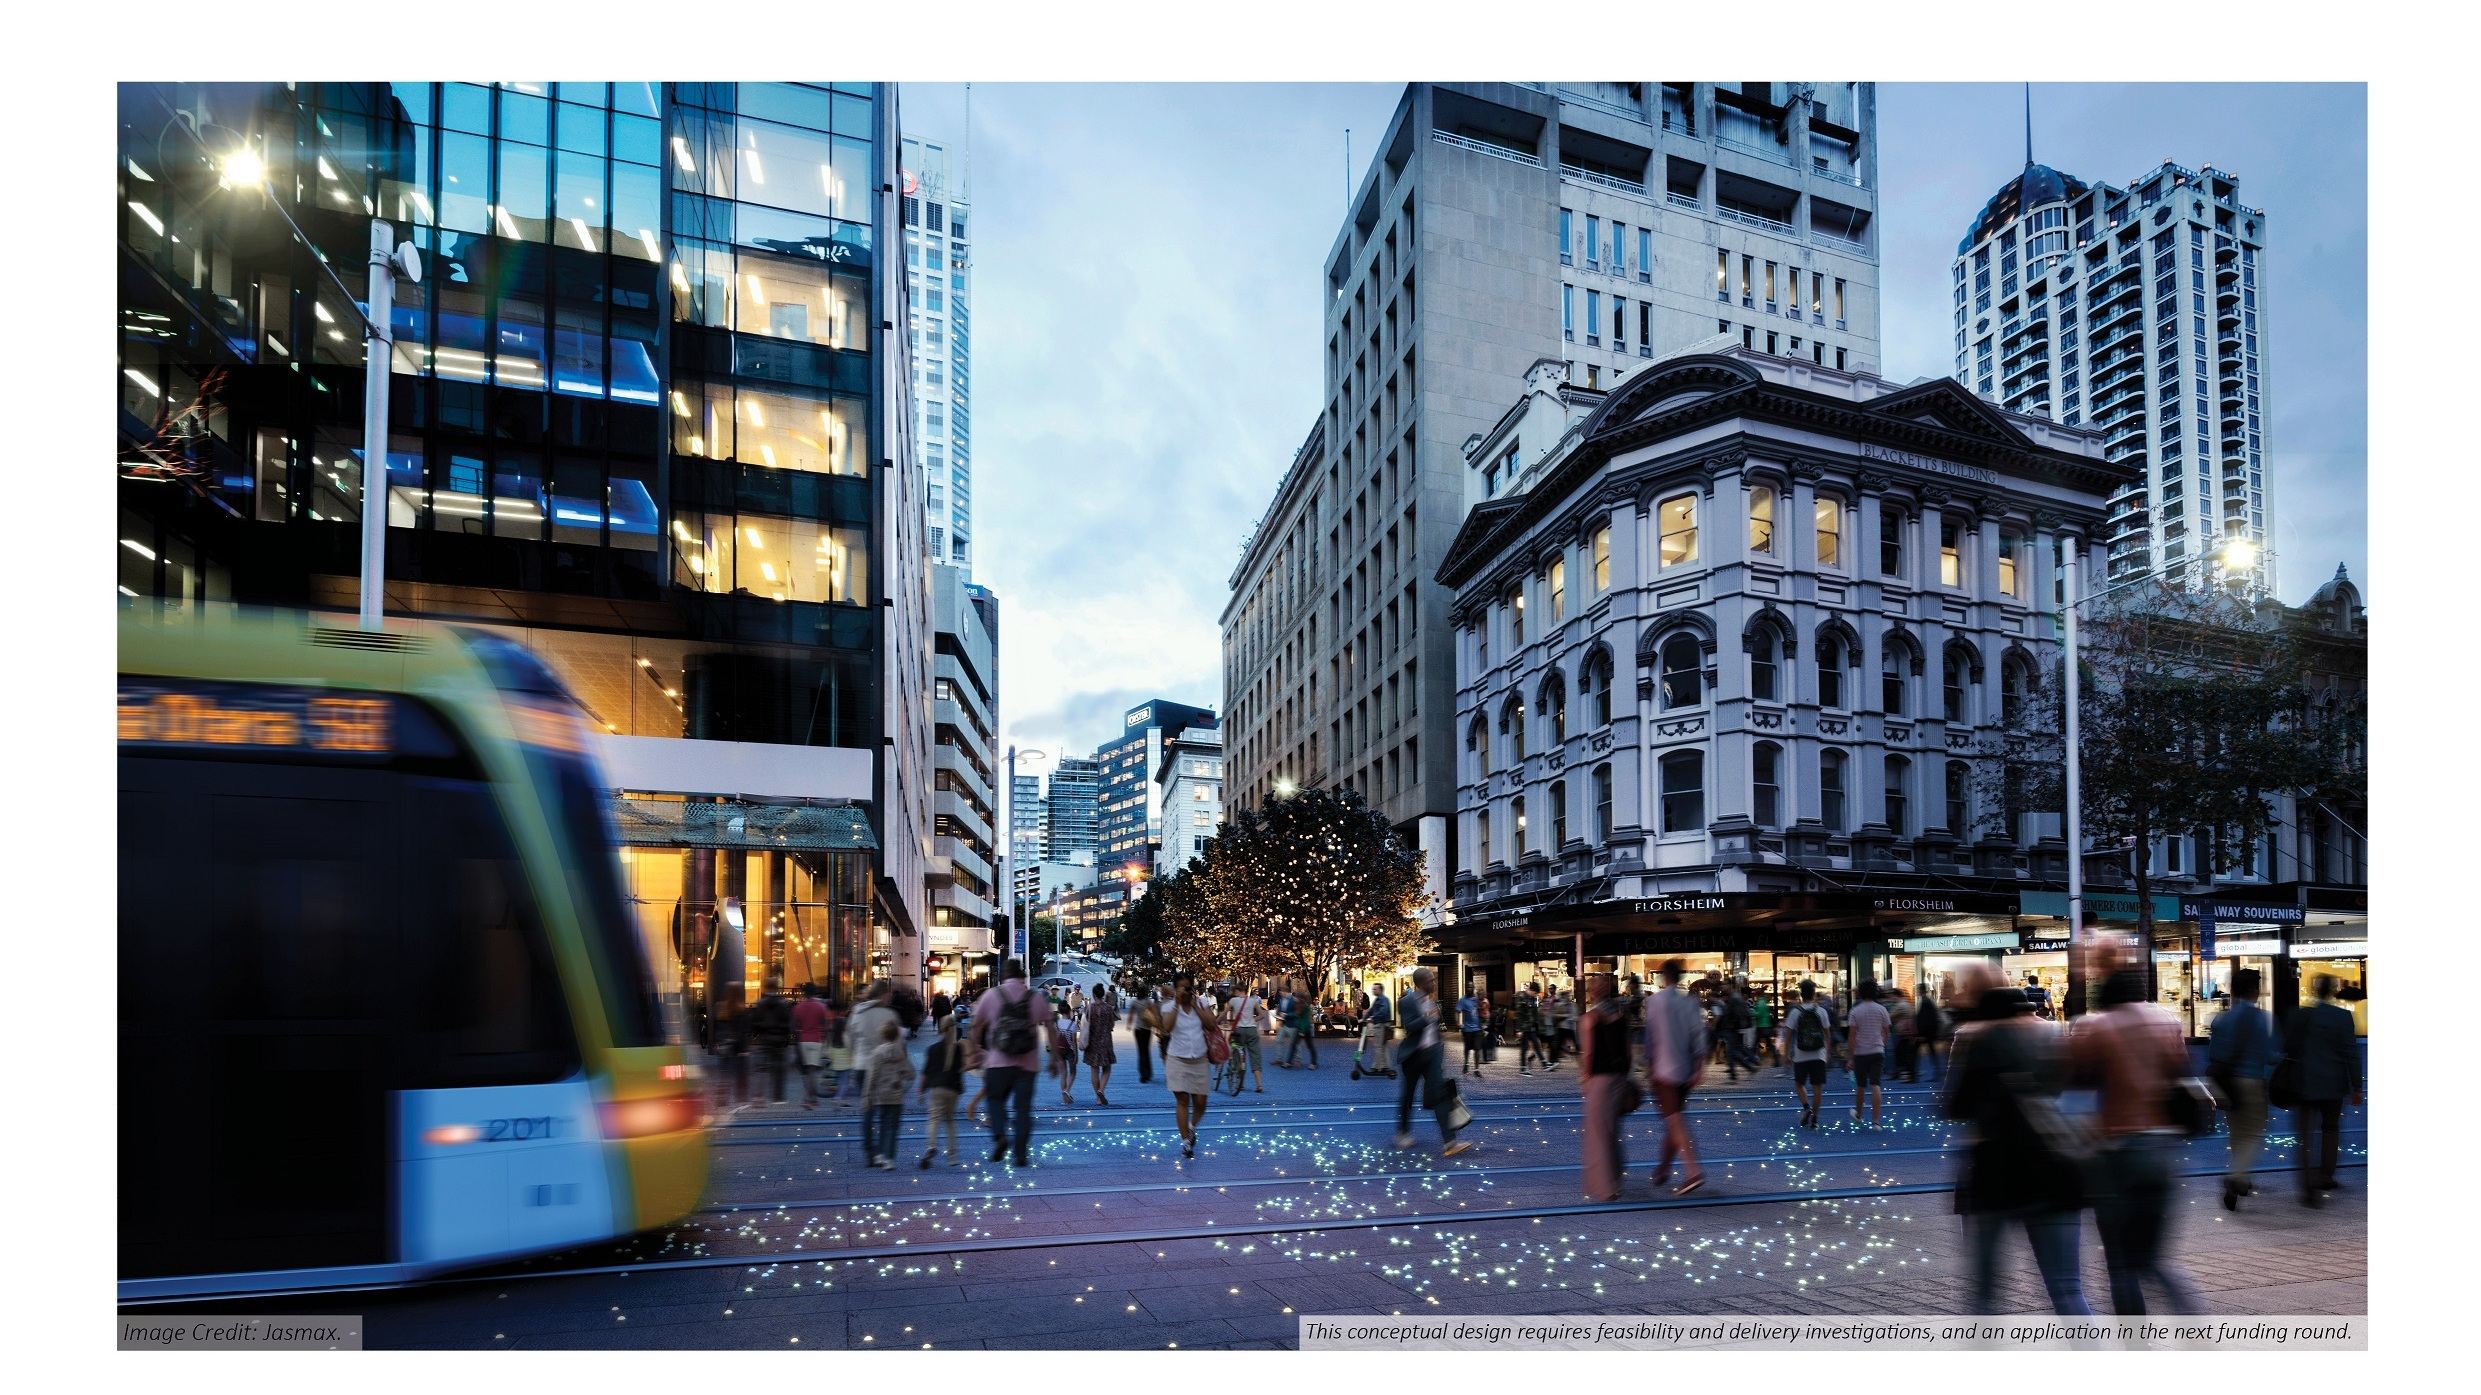 In the future Queen St and adjoining streets like Shortland St, will be further pedestrianised. Image credit: Jasmax